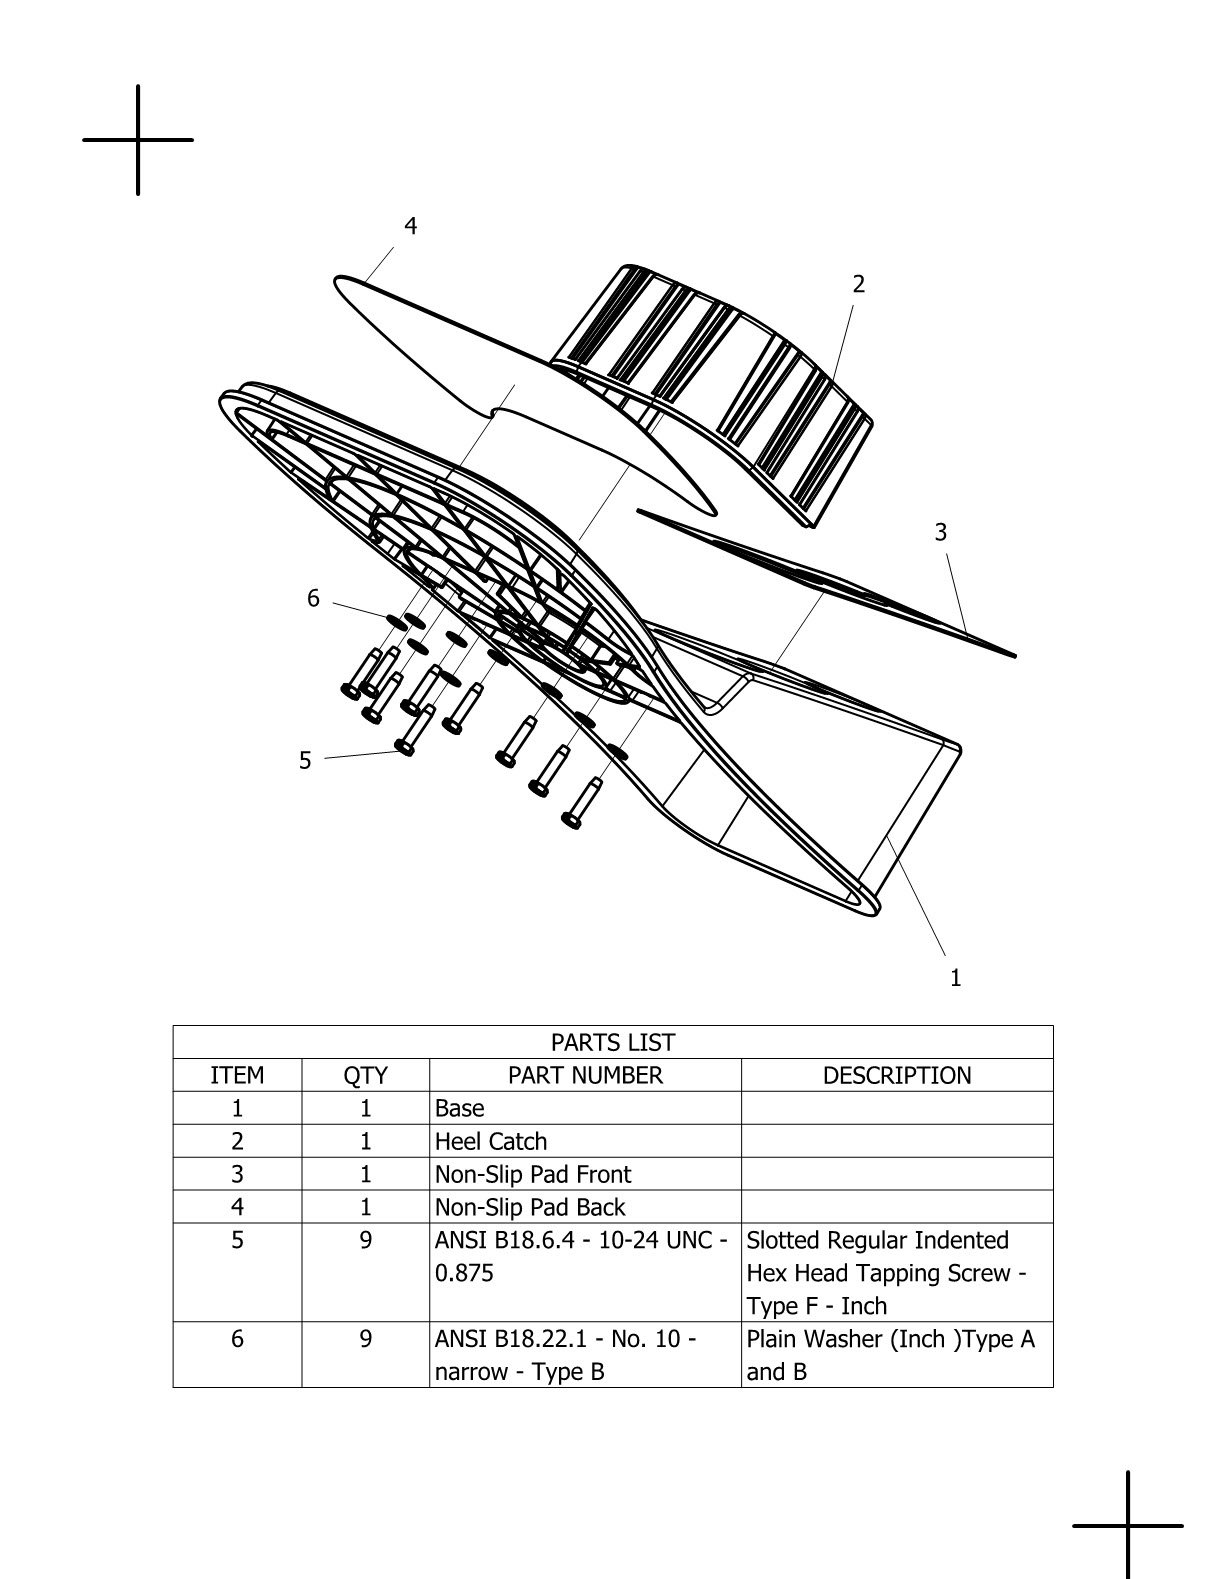 patent drawing debooter